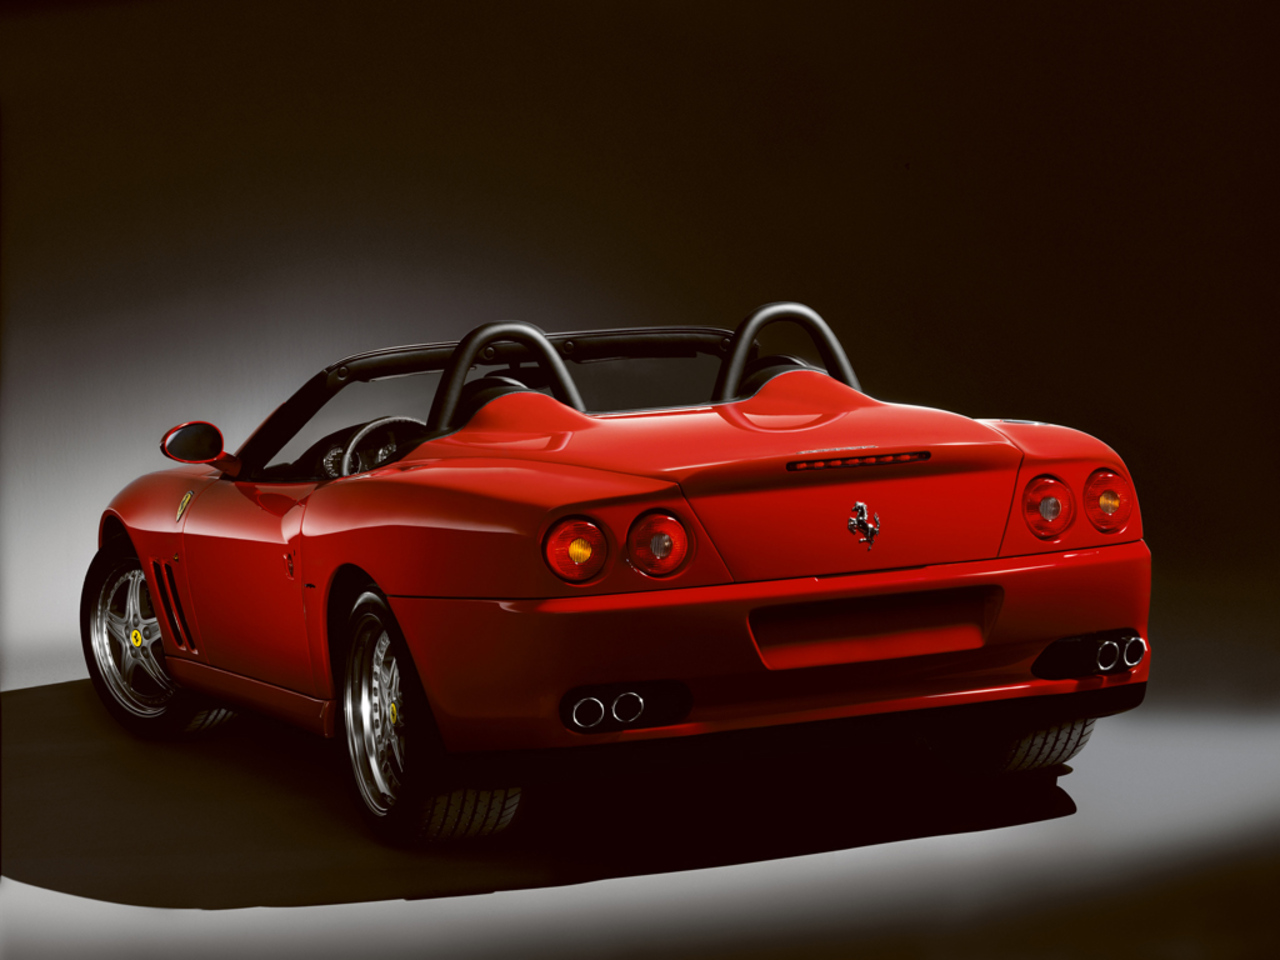 550 Barchetta Pininfarina: 3/4 rear view